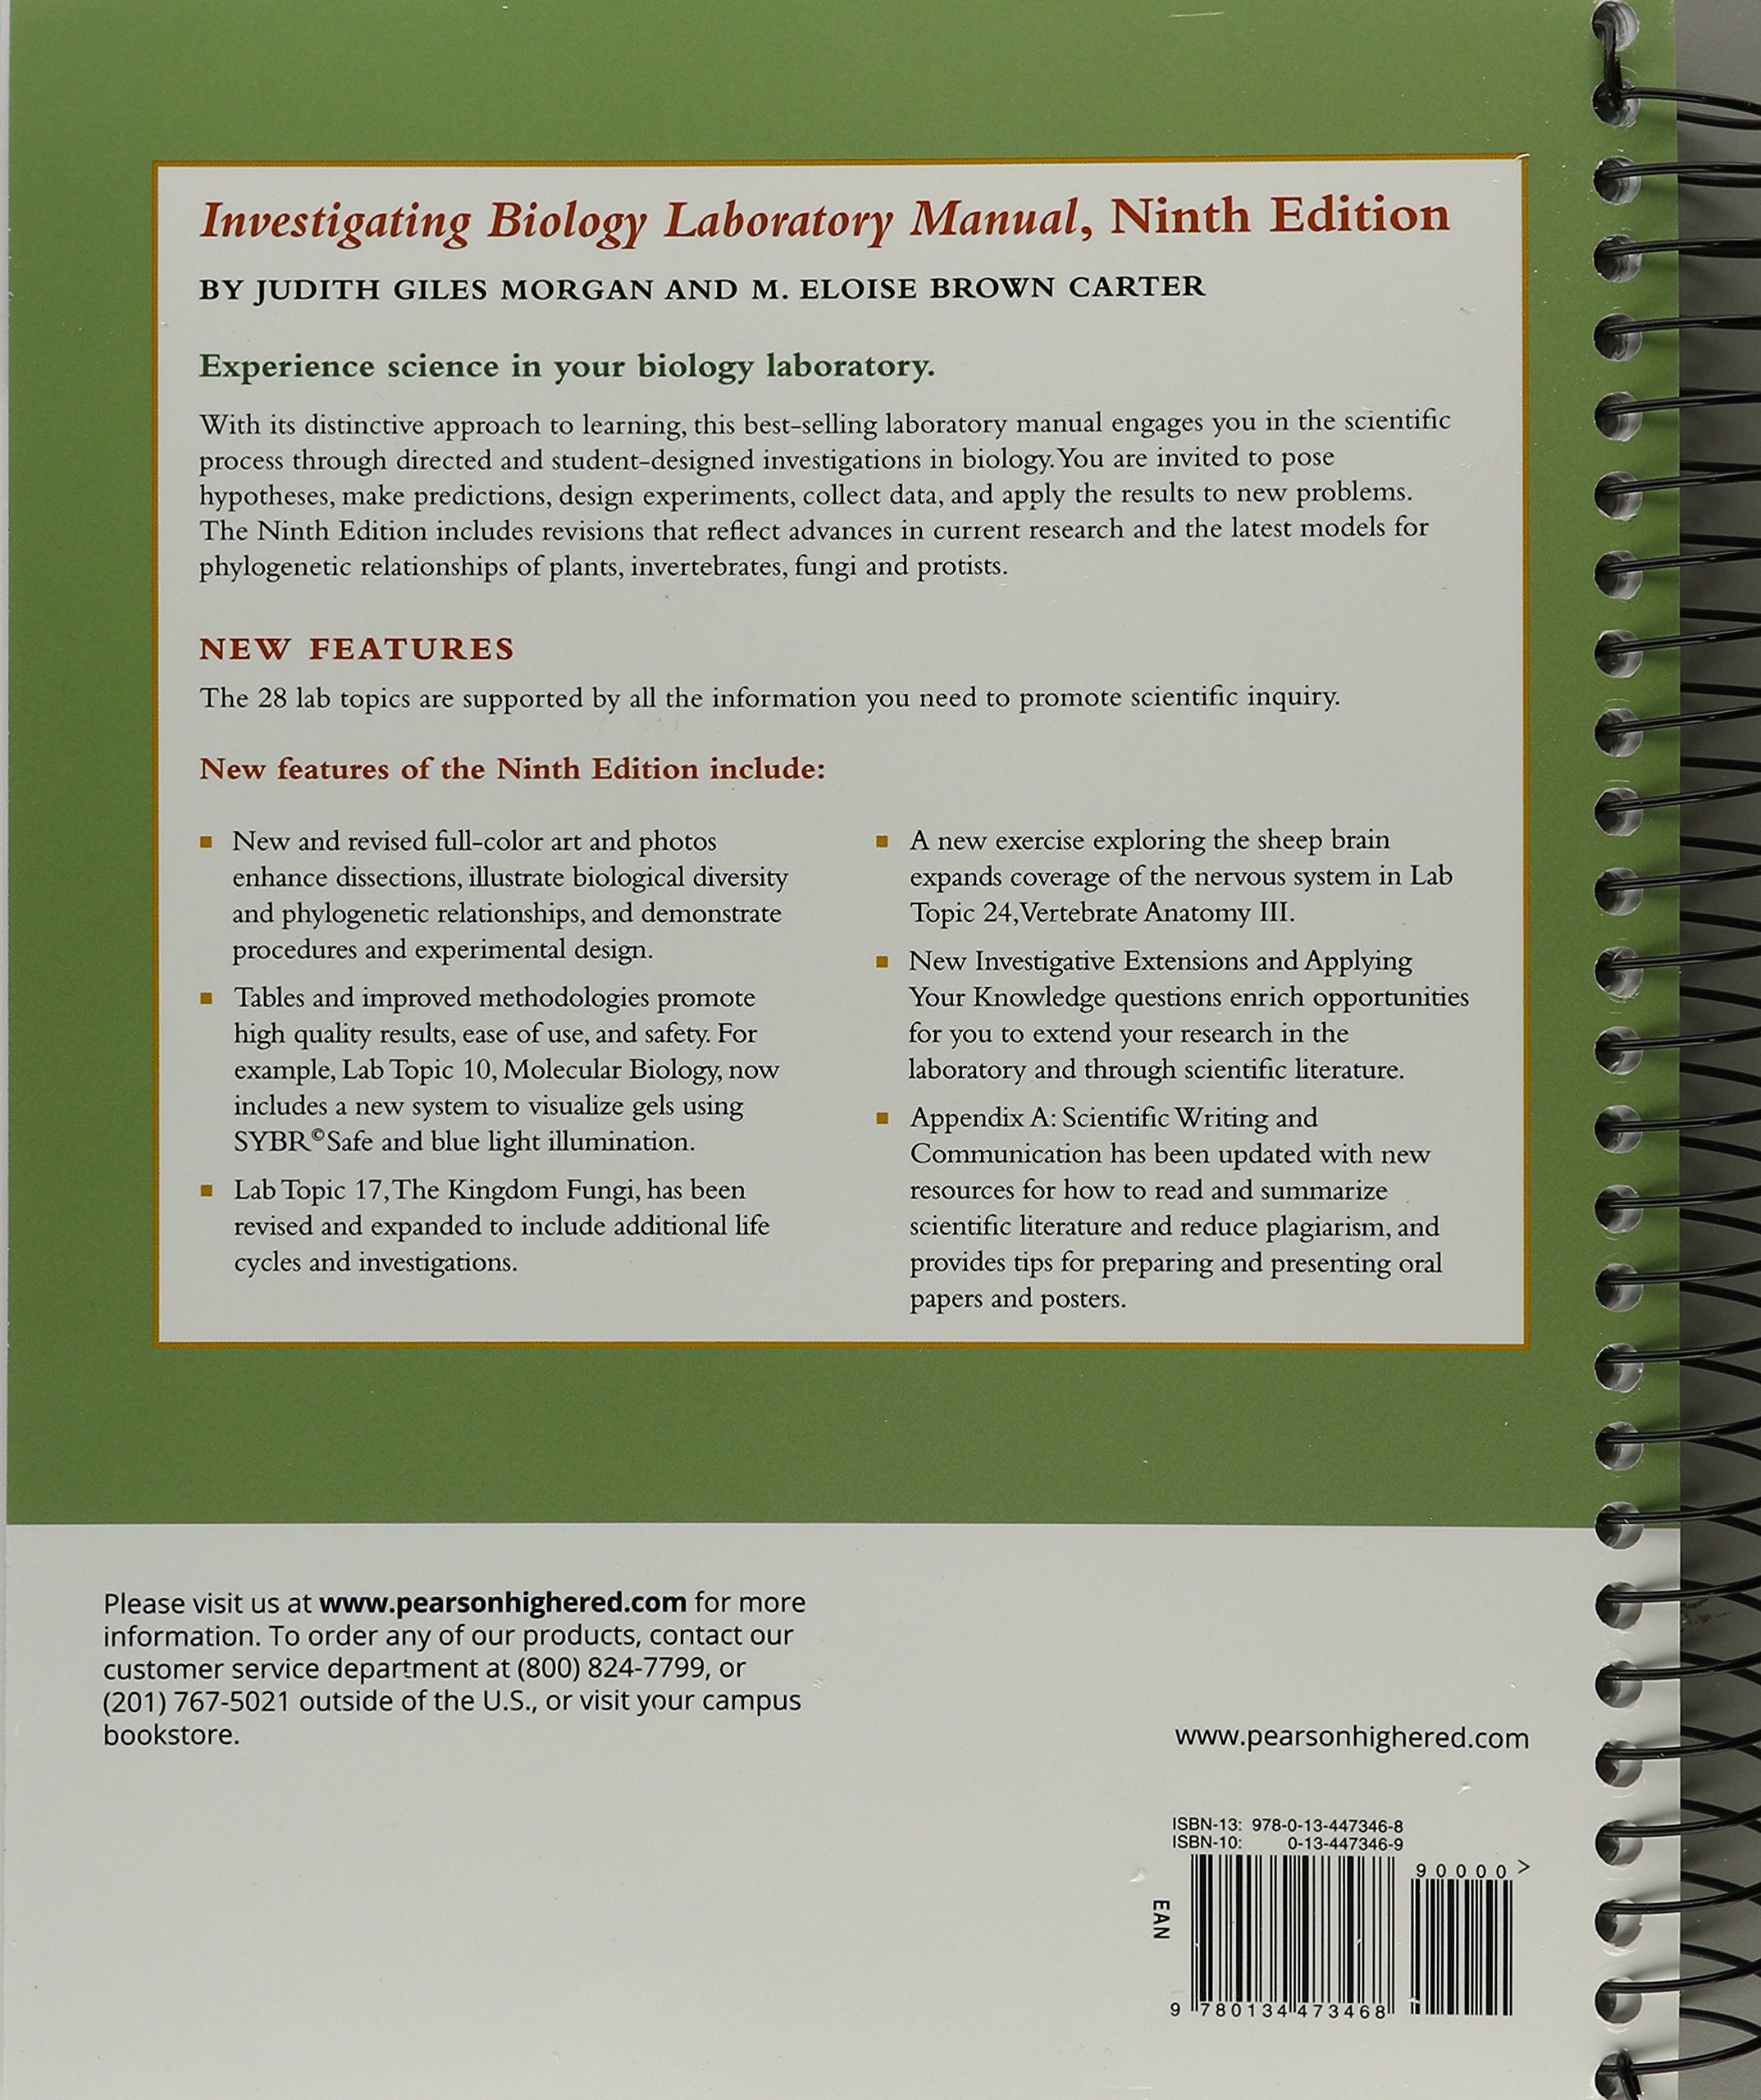 Buy Investigating Biology Laboratory Manual Book Online at Low Prices in  India   Investigating Biology Laboratory Manual Reviews & Ratings -  Amazon.in